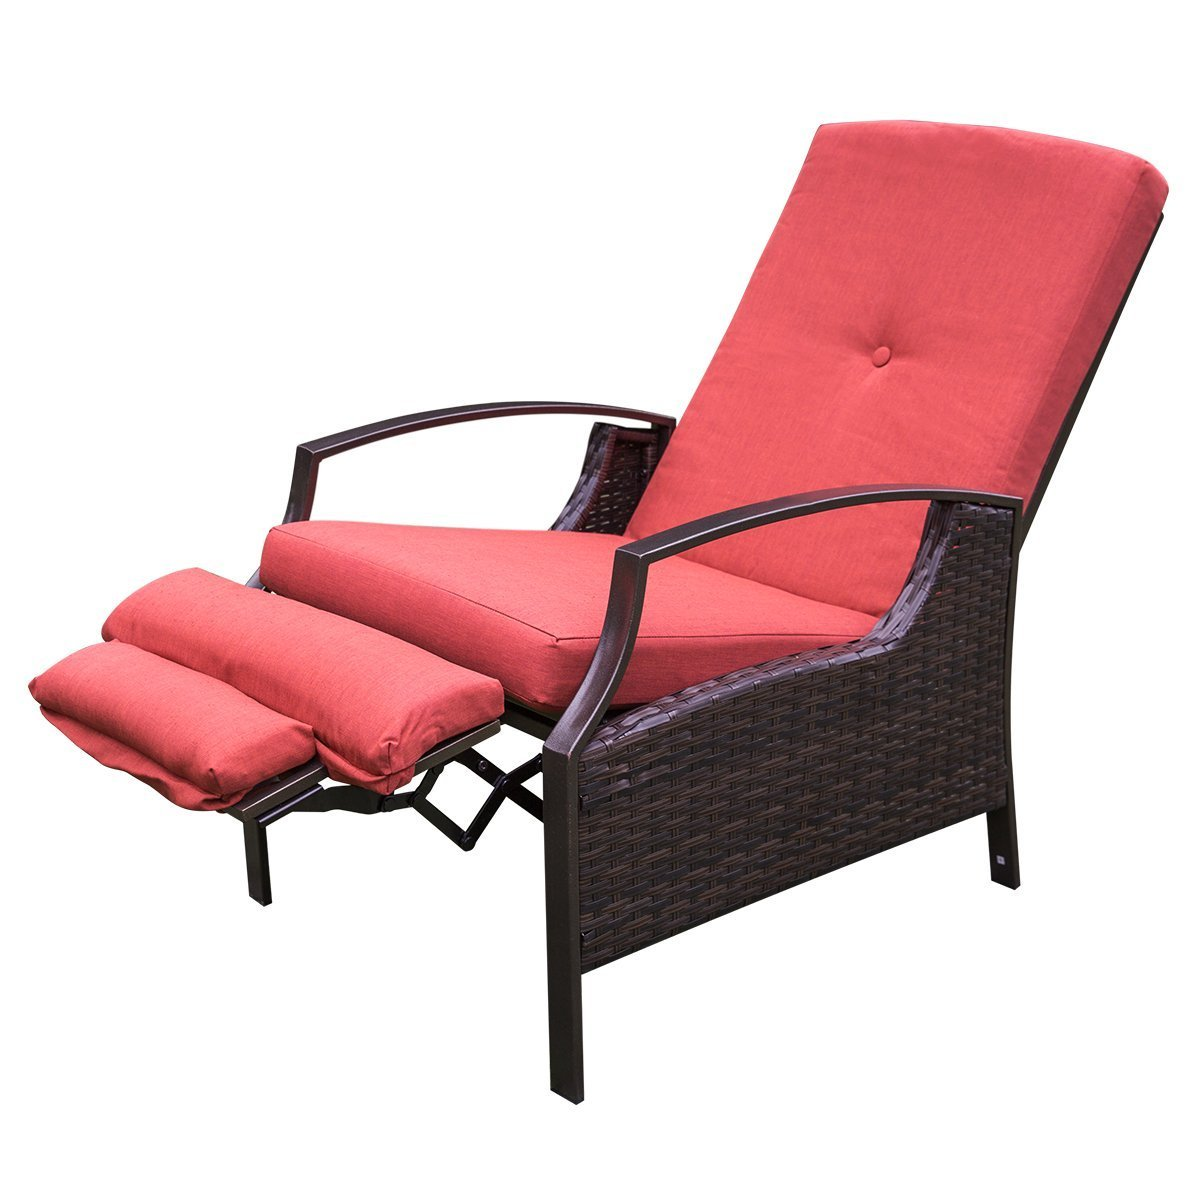 HollyHOME Patio Wicker Adjustable Recliner Chair, Relaxing Lounge Chair  With Thick Red Spunpoly Cushion,